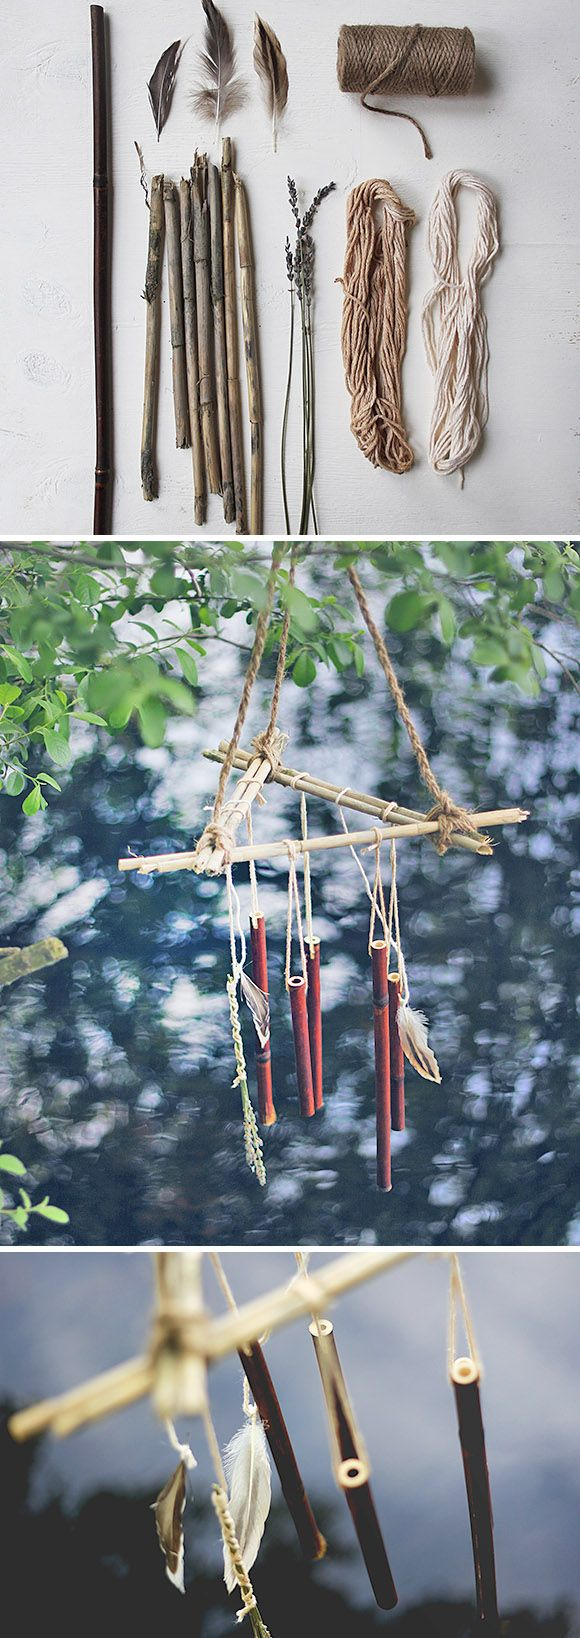 13 Crafty DIY Wind Chimes • Lots of Ideas and Tutorials! Including from 'free people', these cool bamboo wind chimes.